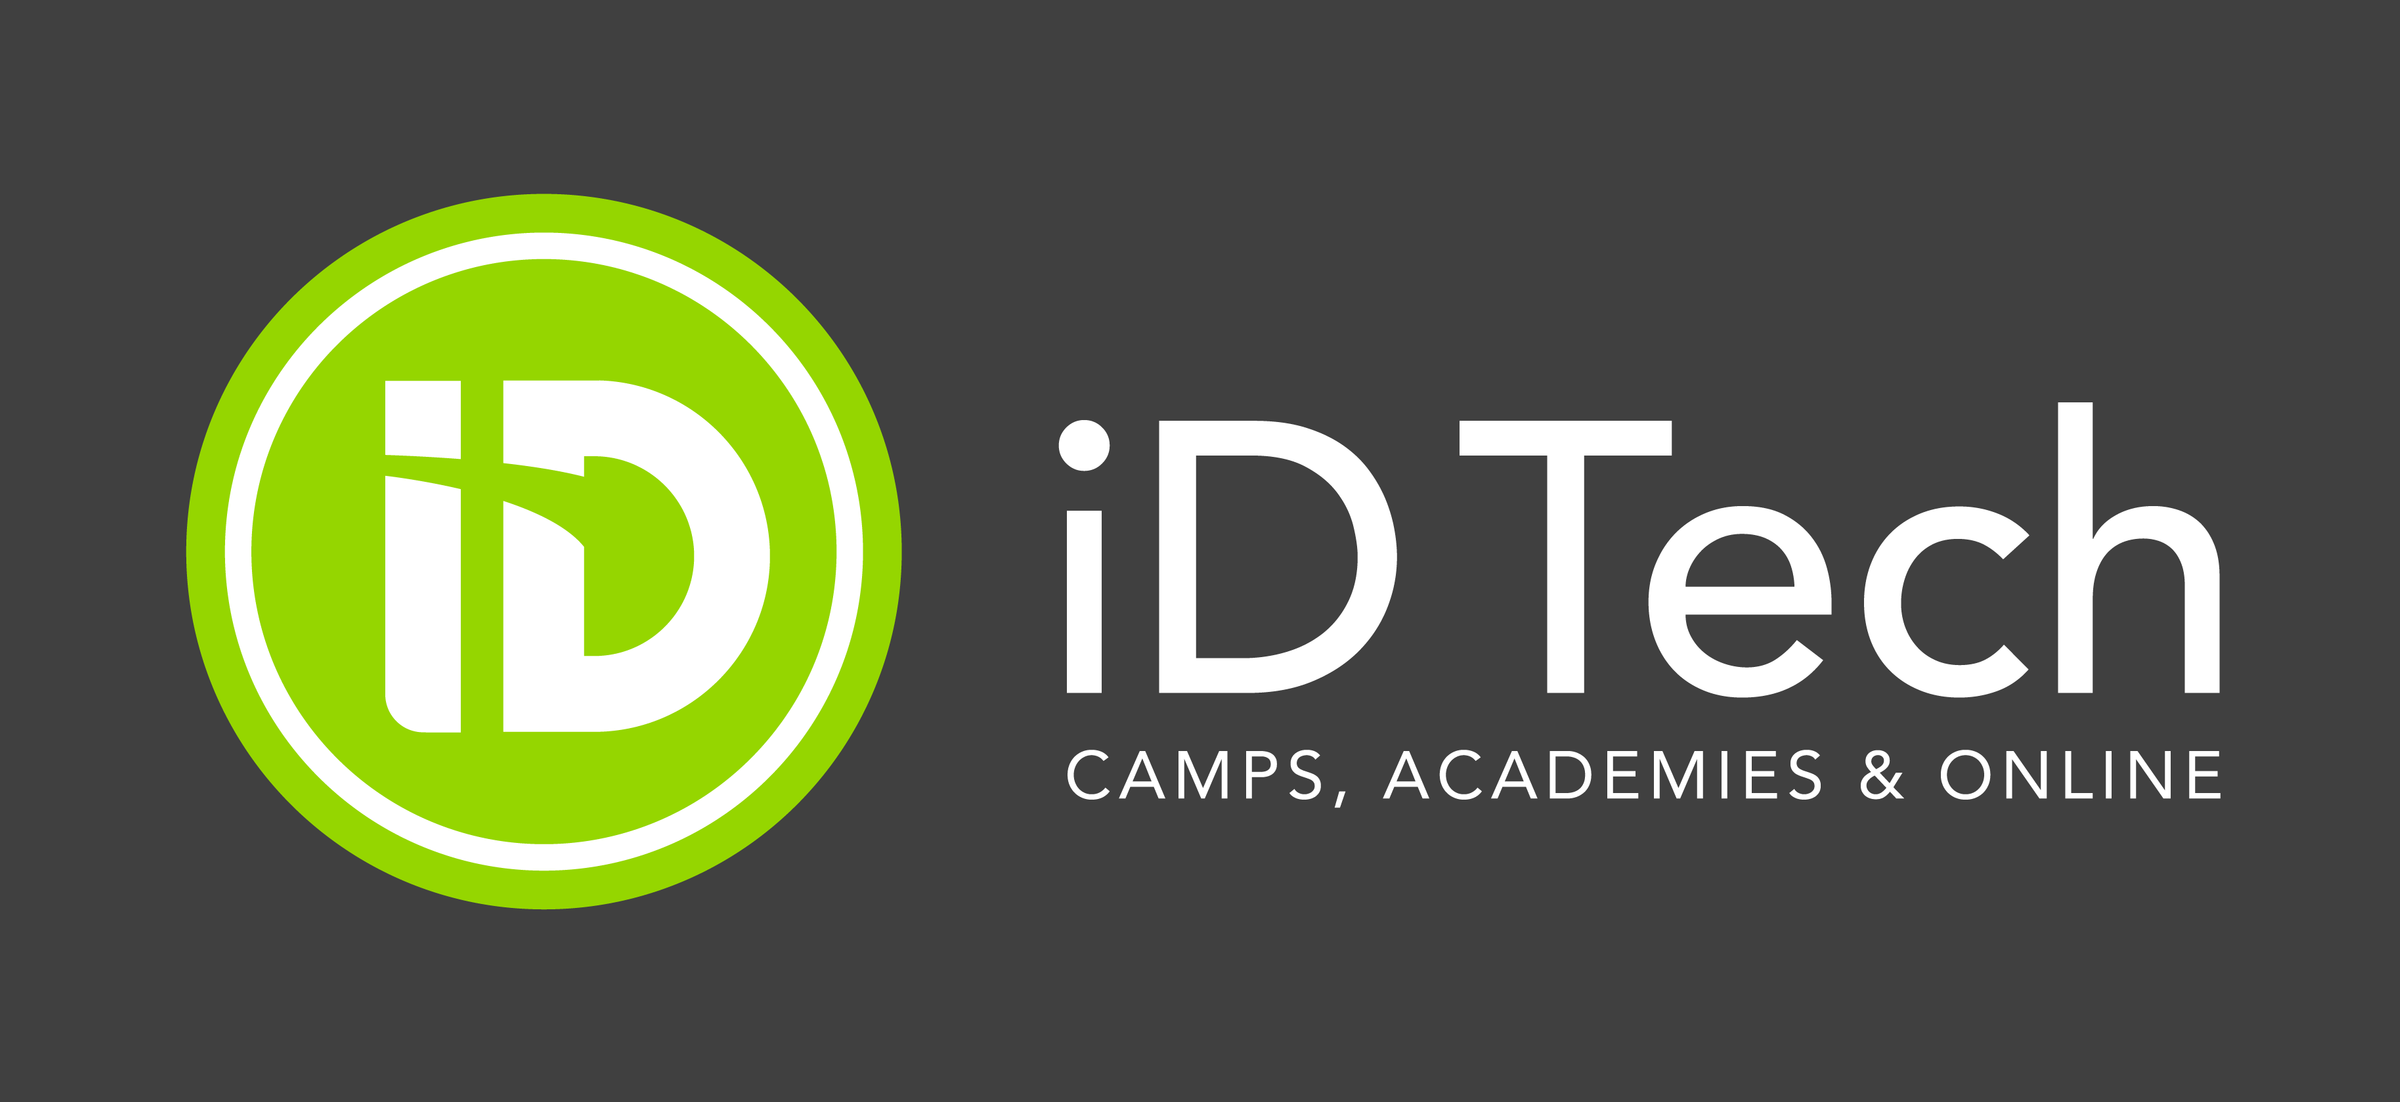 iD Tech Camps: #1 in STEM Education - Held at Colorado College